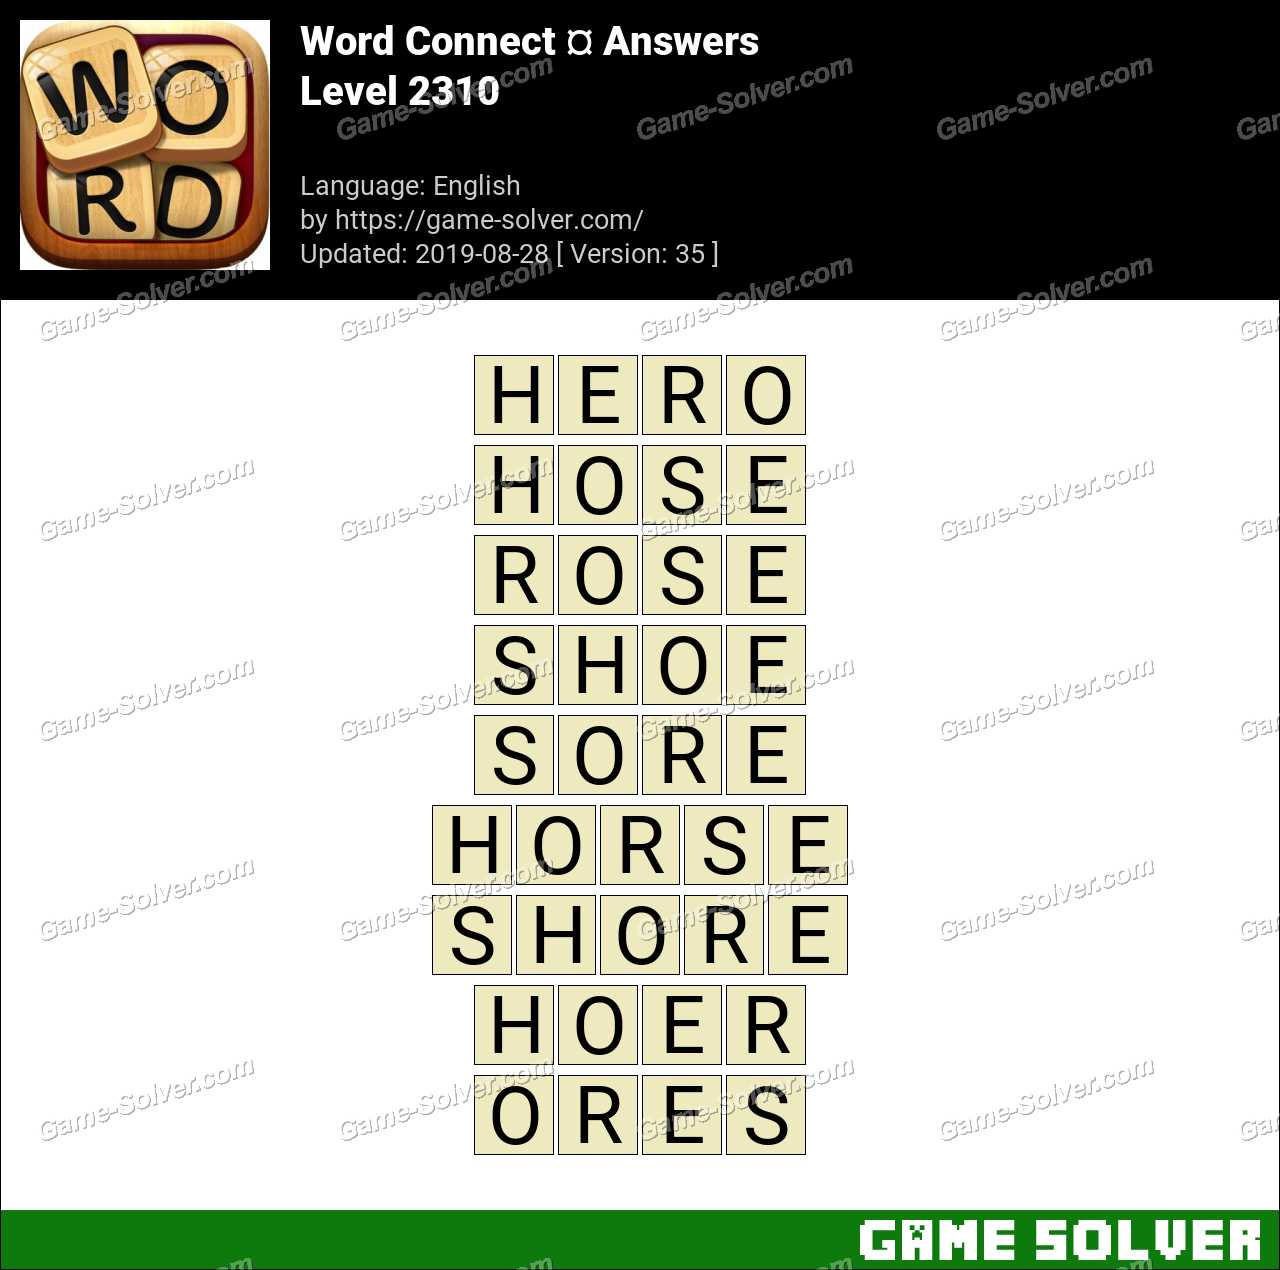 Word Connect Level 2310 Answers